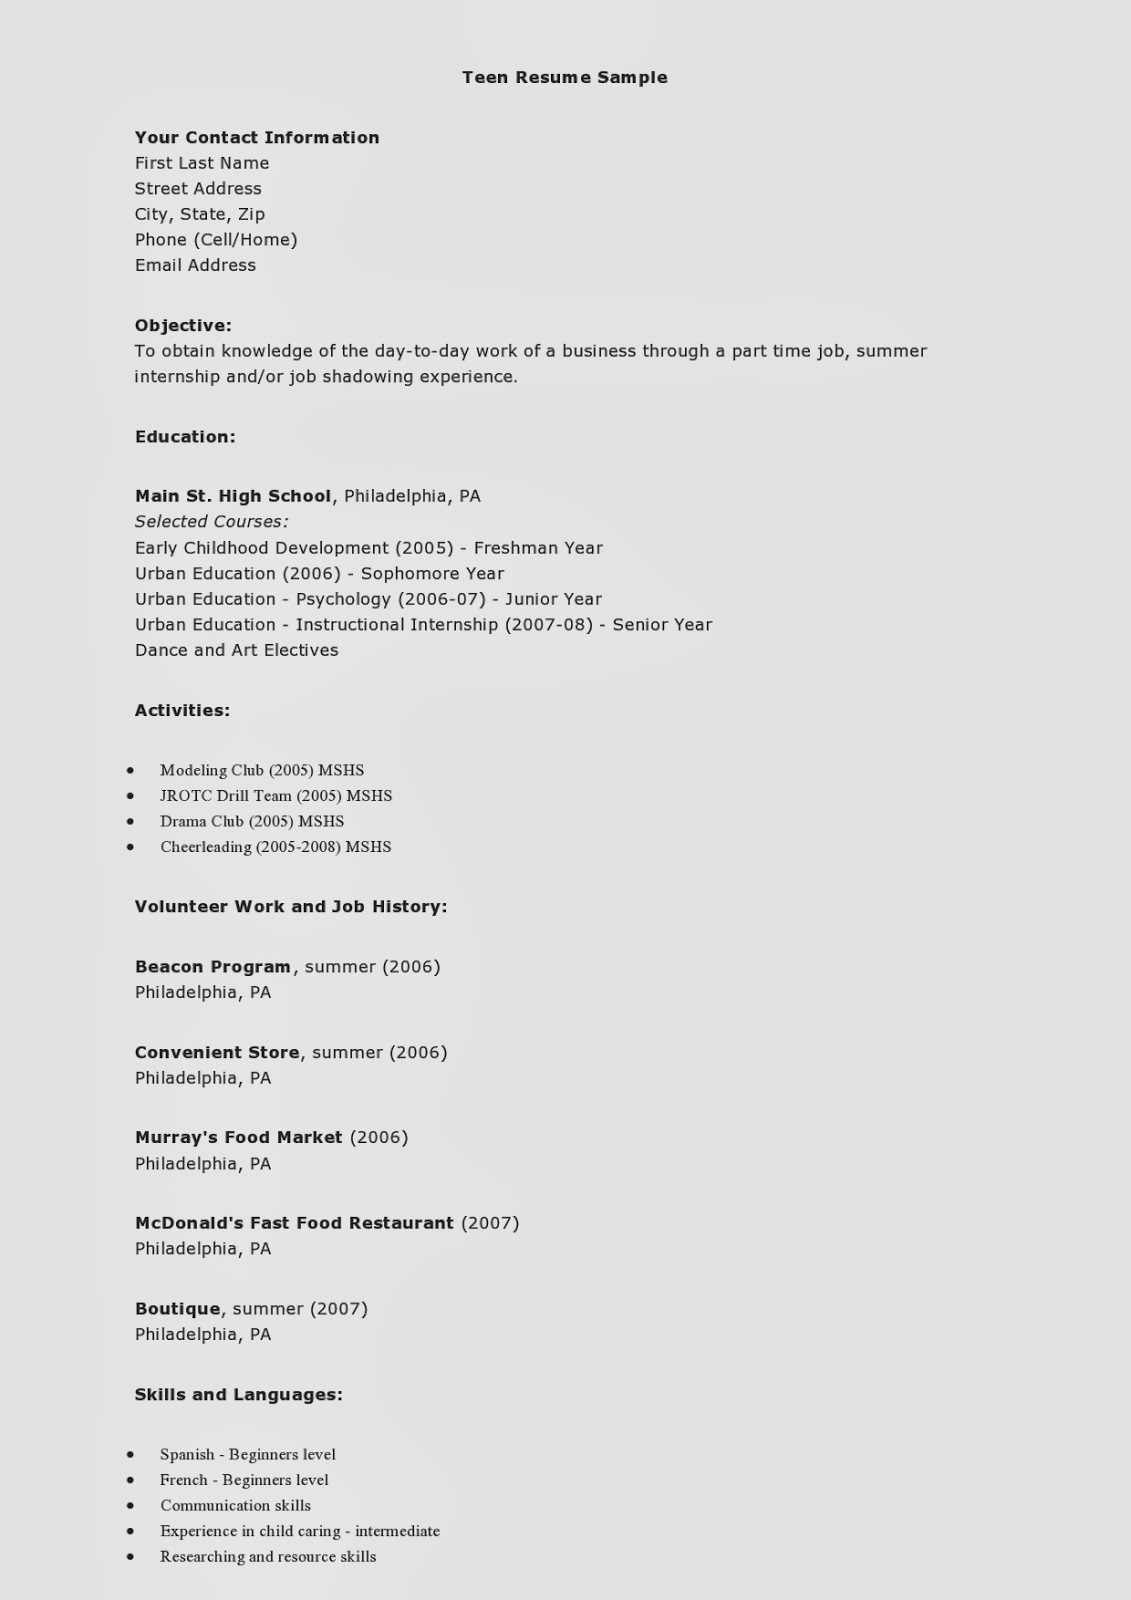 Resume Examples For A Job 2 Sample Resume For High School Student